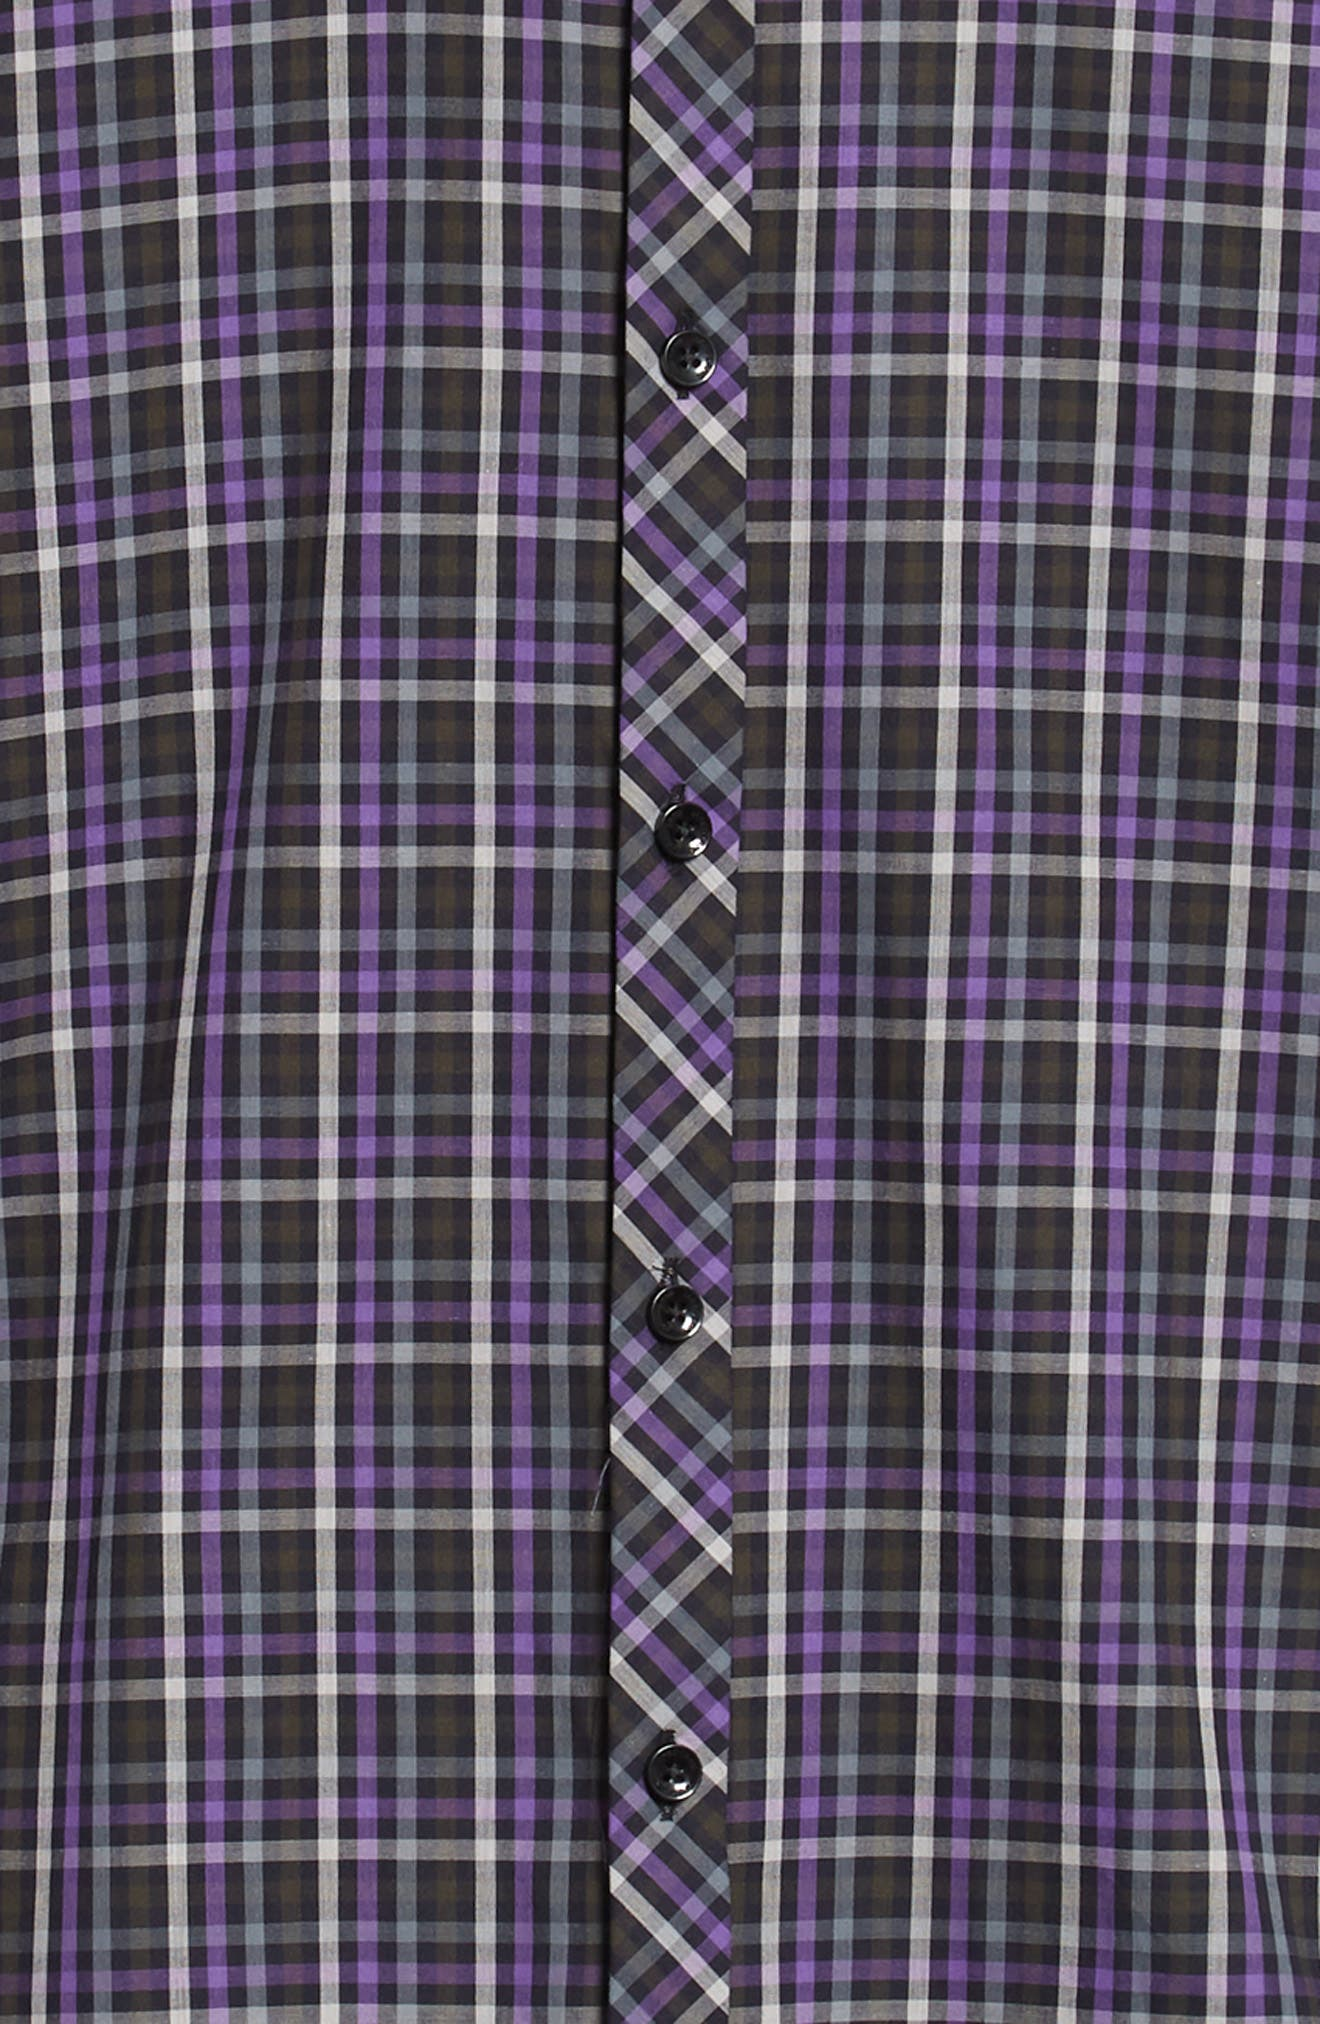 Trim Fit Sport Shirt,                             Alternate thumbnail 6, color,                             PURPLE - BLACK MULTI CHECK